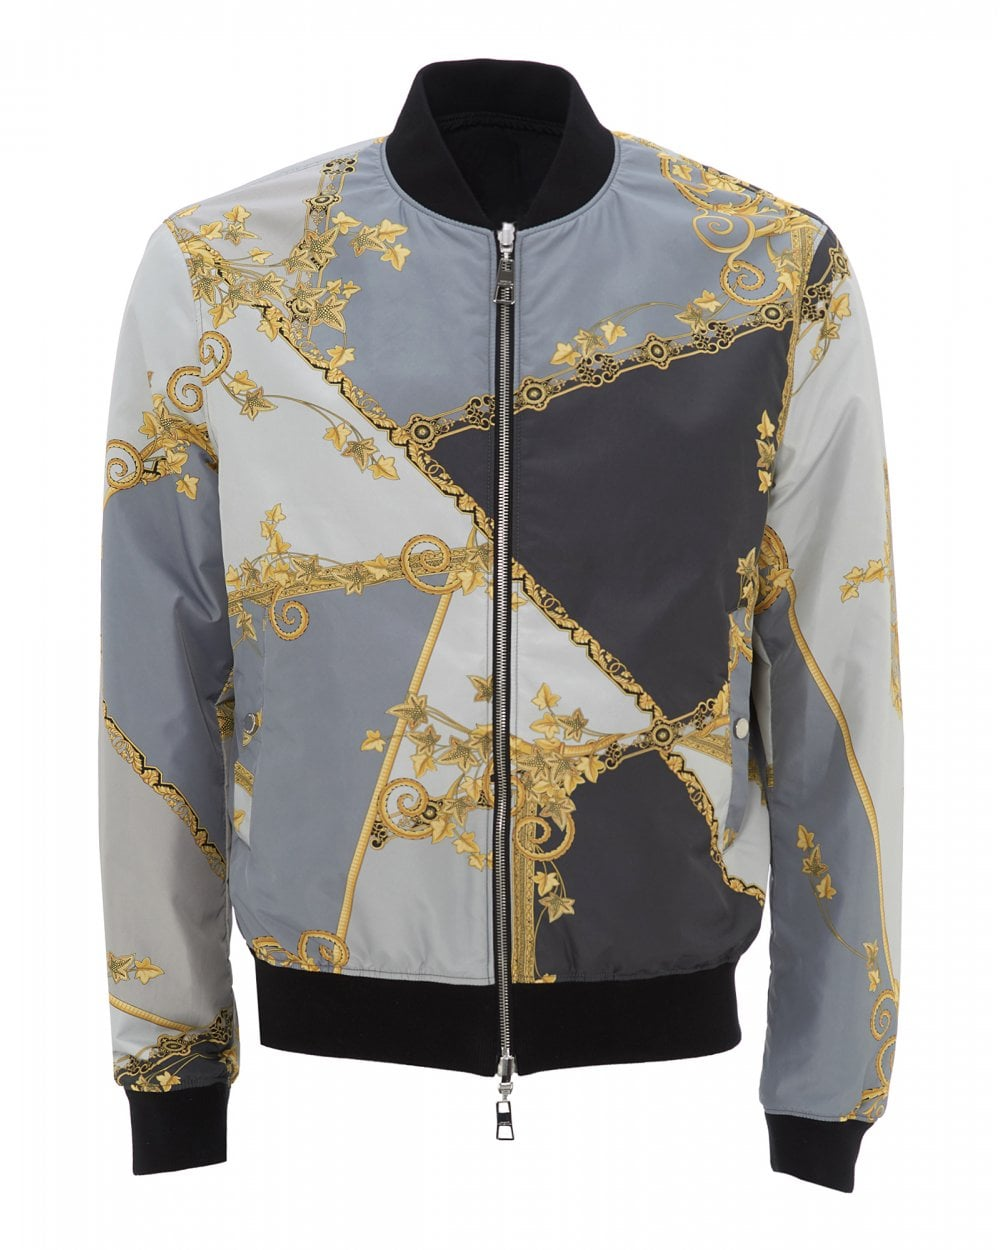 35928d7a57 Mens Pastel Eye Print Bomber, Grey Jacket